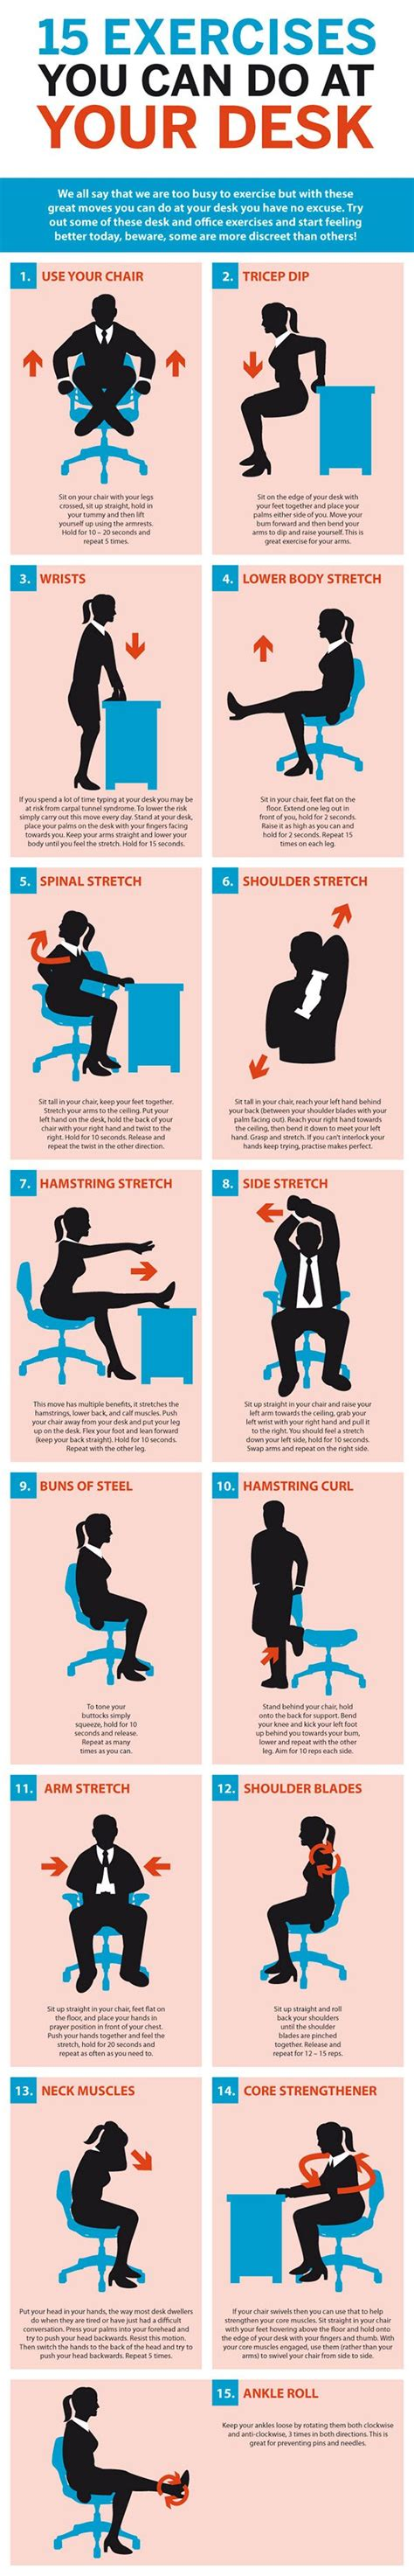 1000 images about exercises at work on pinterest